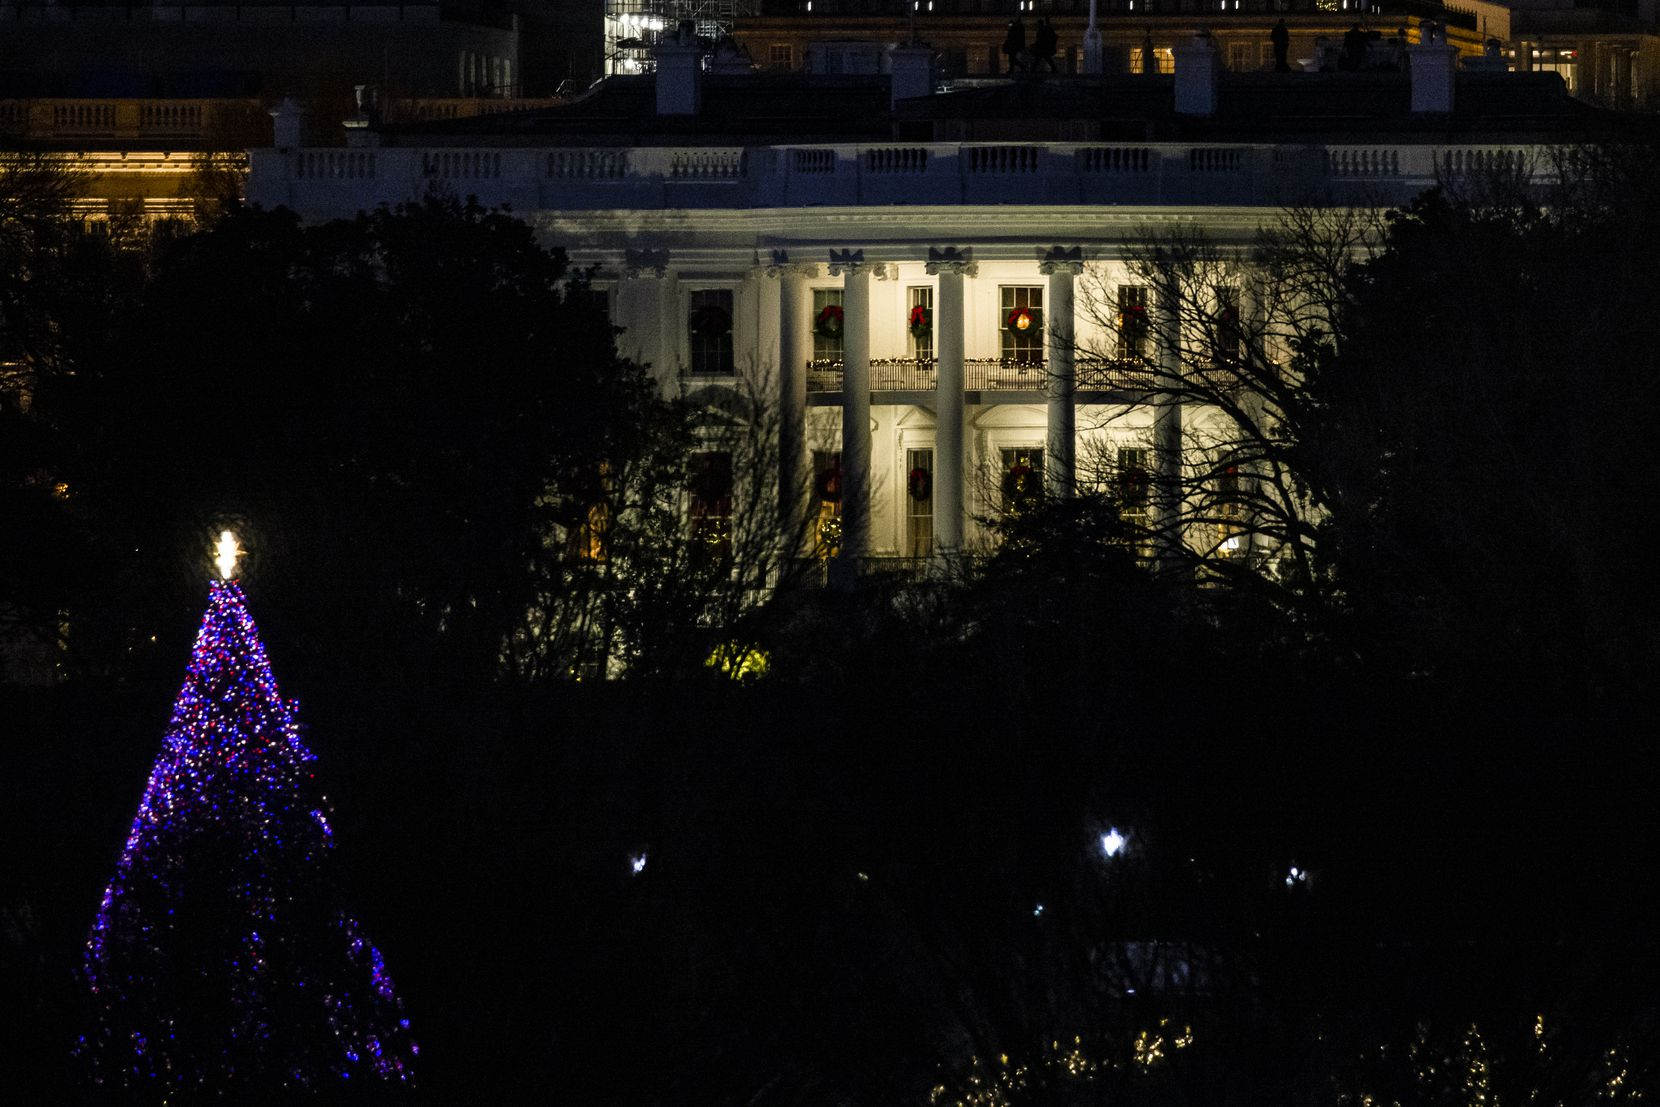 A general view of the White House on Saturday, Dec. 26, 2020, as night falls in Washington, D.C.